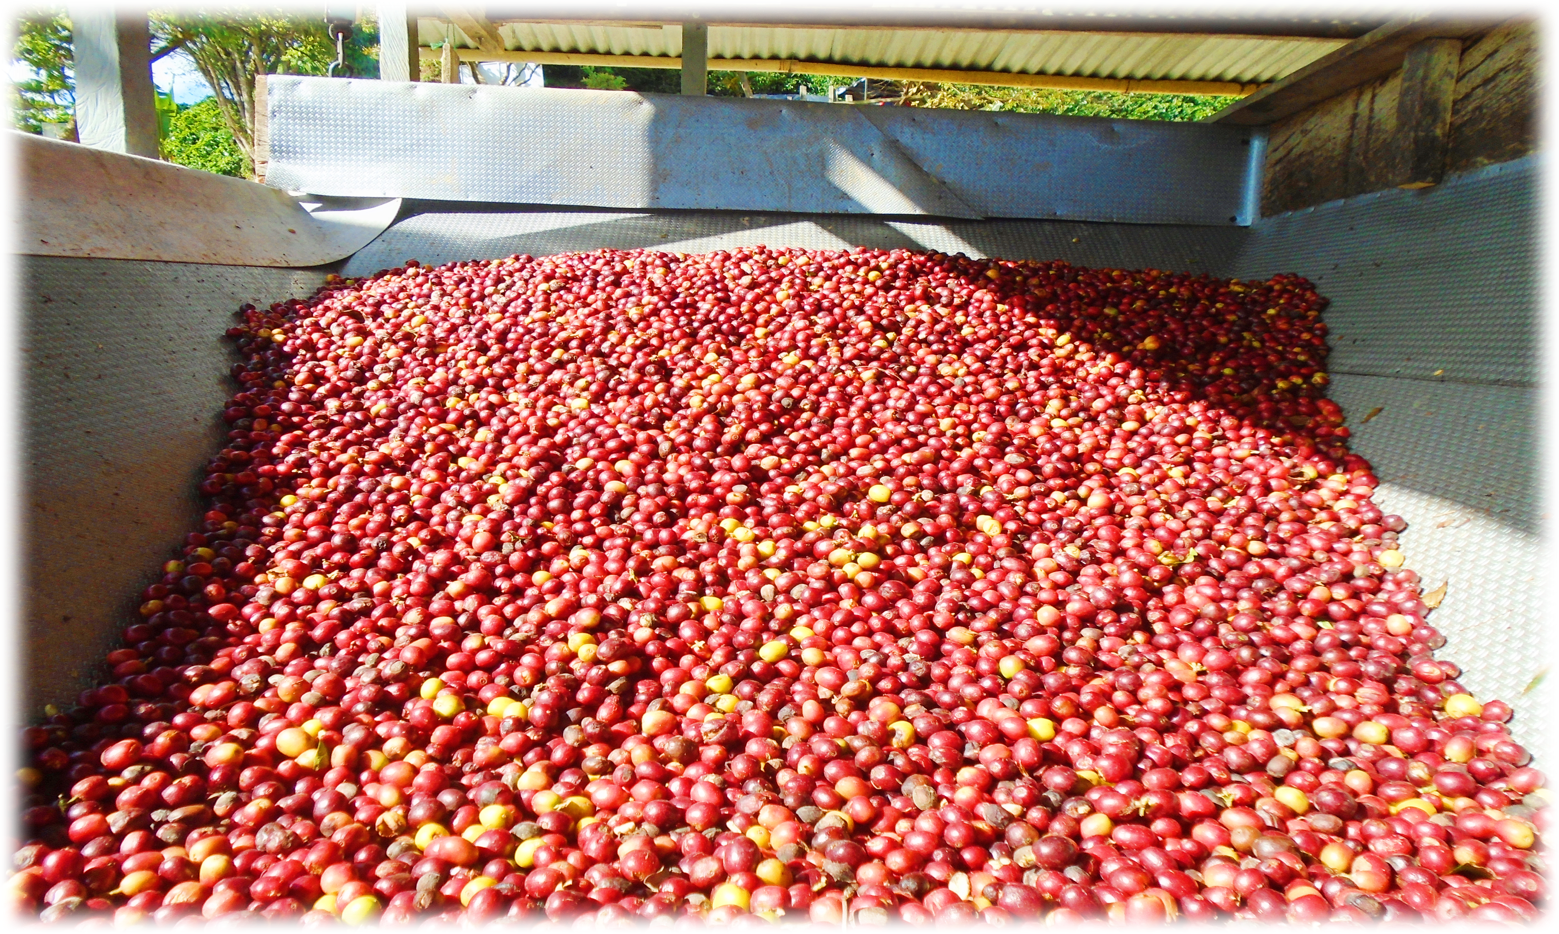 before pulping